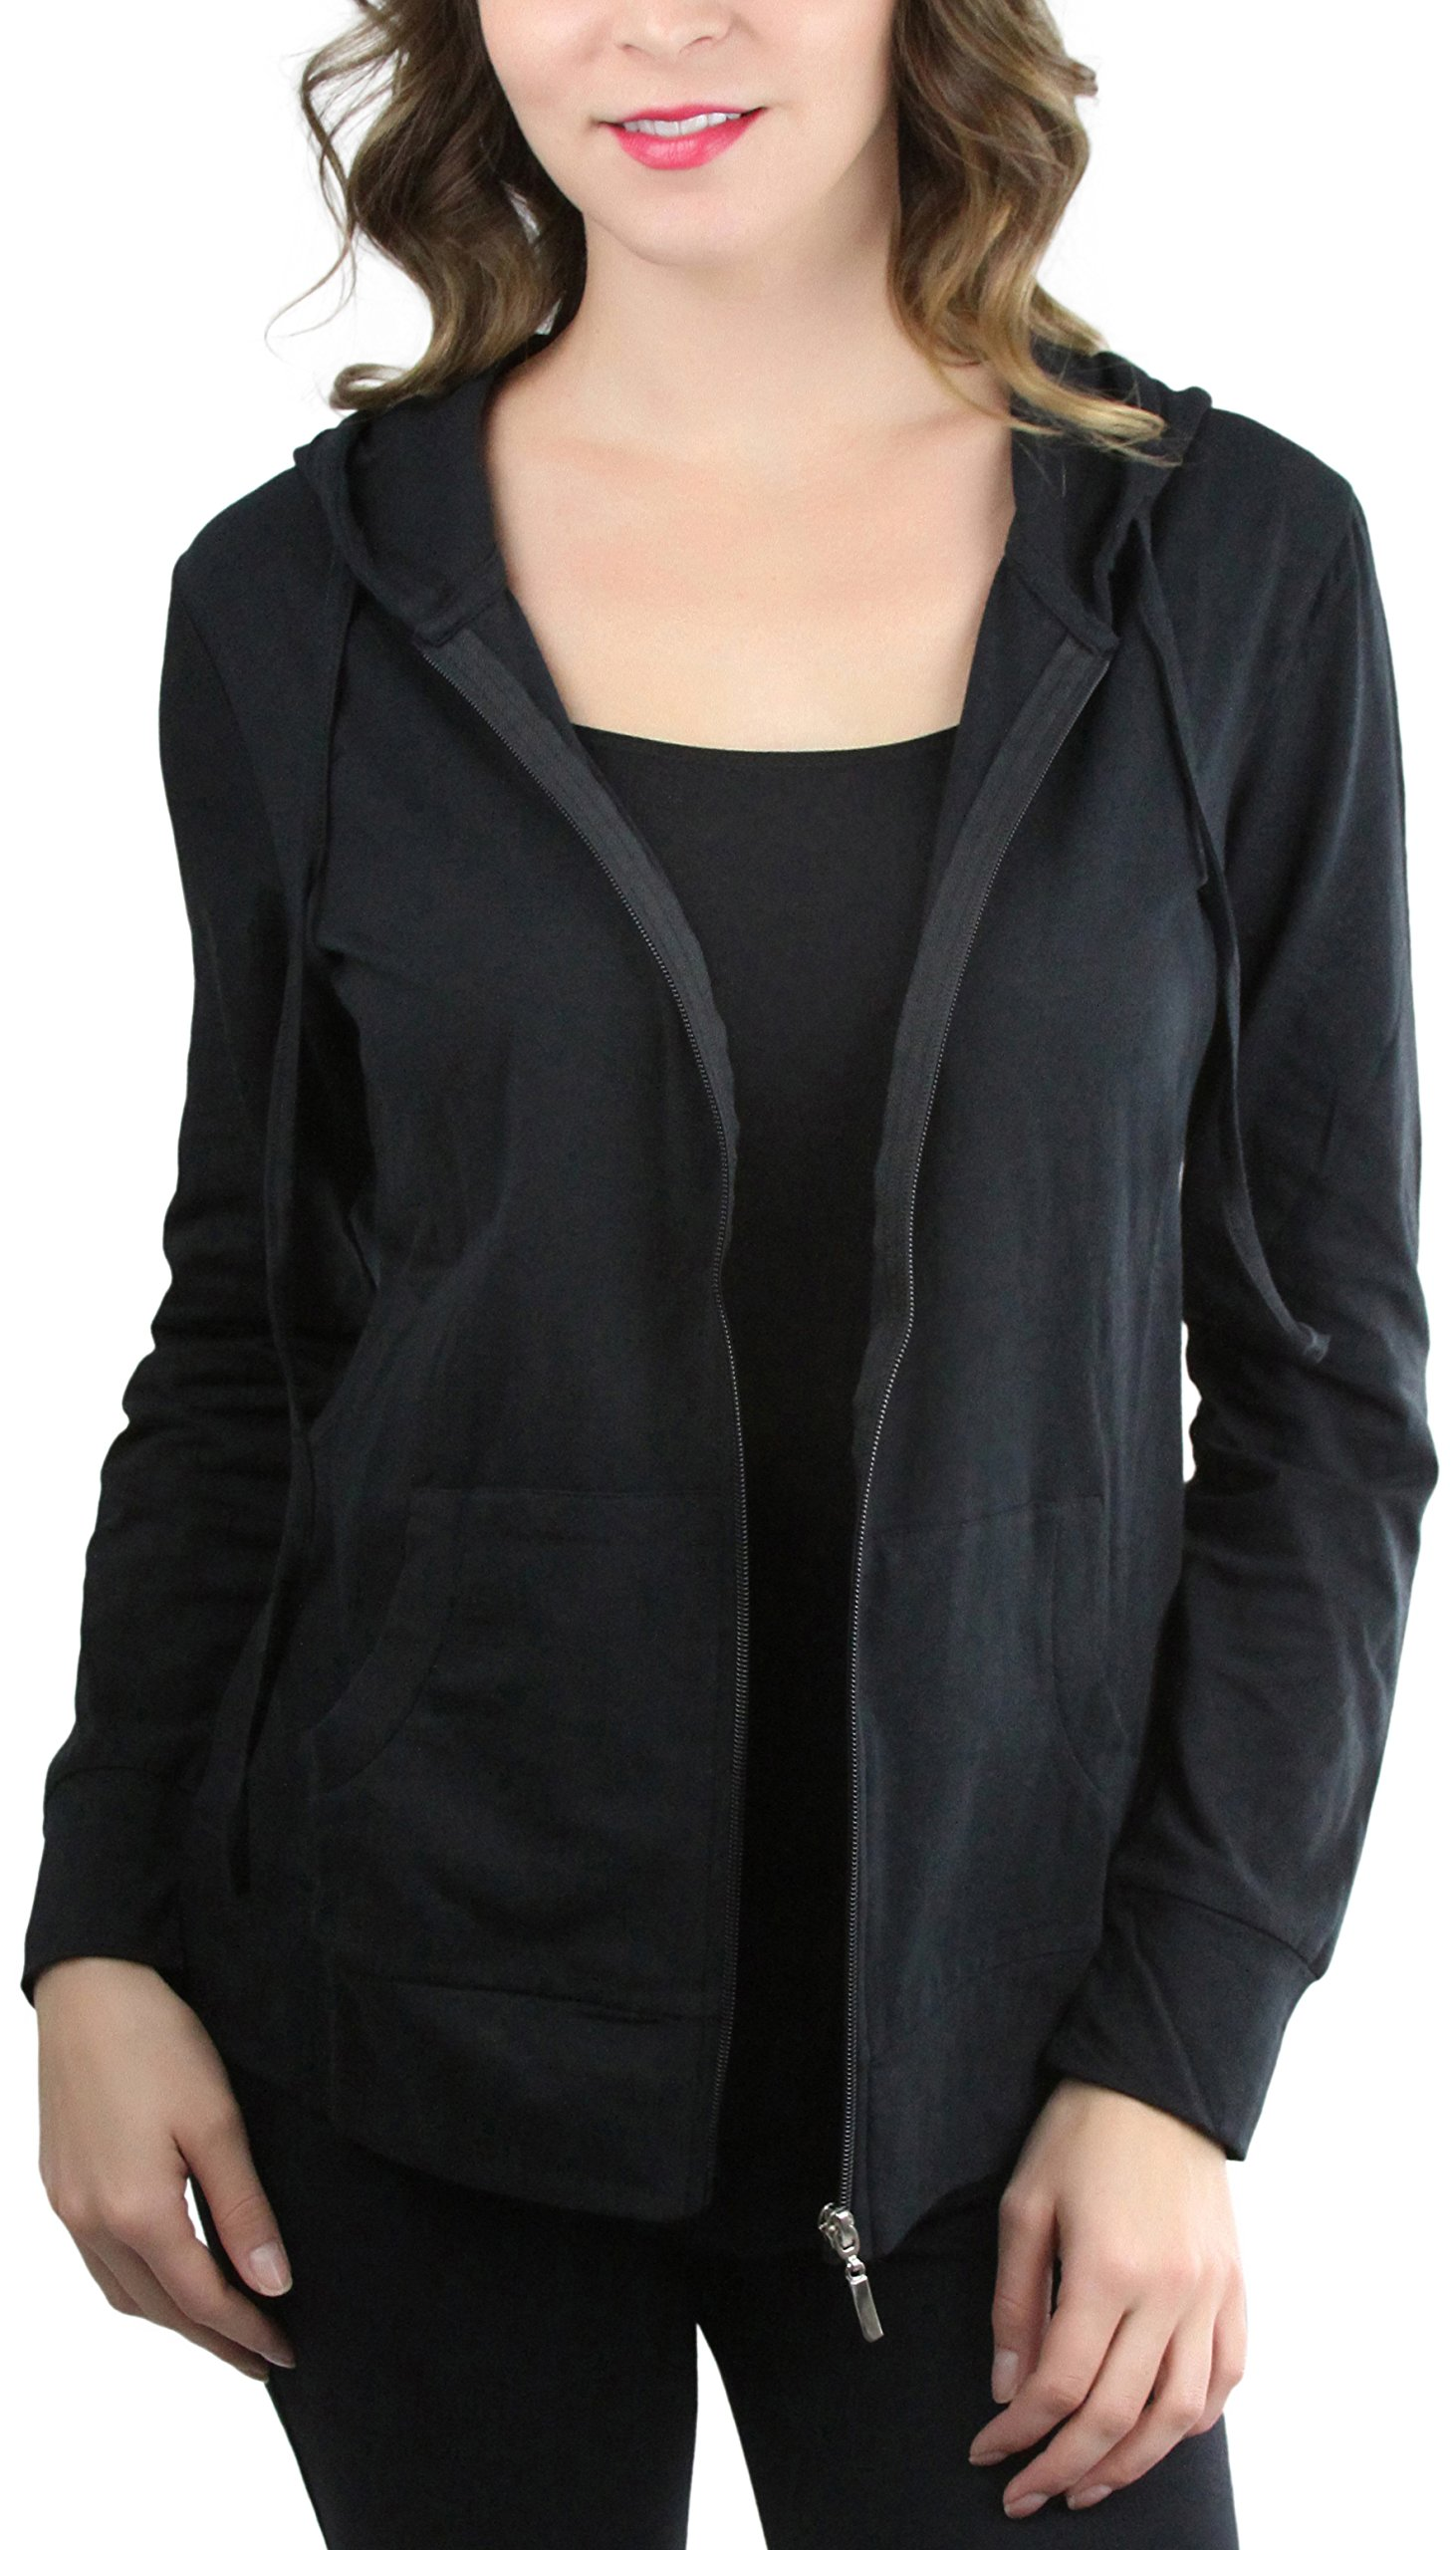 ToBeInStyle Women's Thin Fabric L.S. Zip up Hoodie - Black - Small